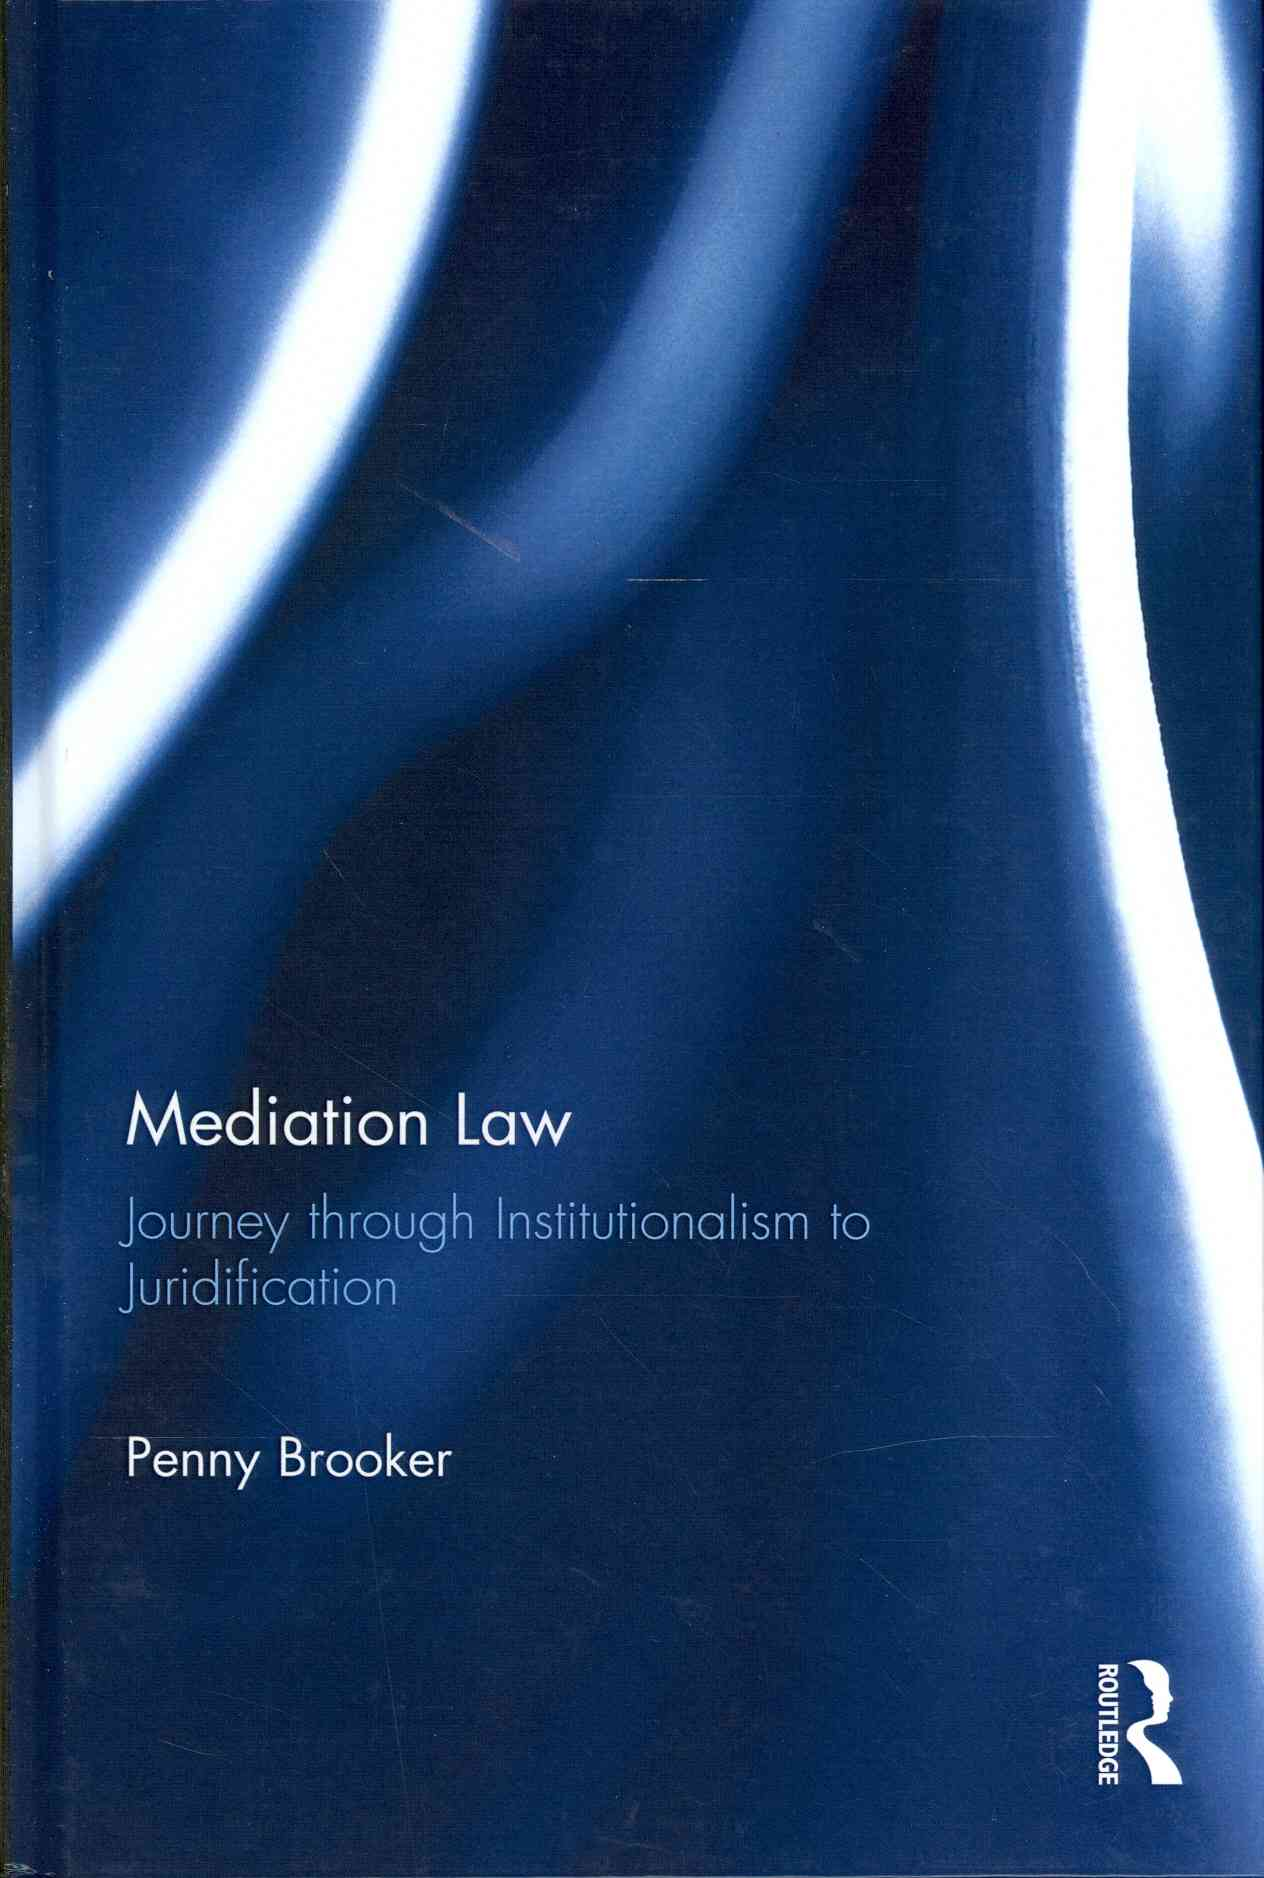 Mediation Law: Journey through Institutionalism to Juridification (Hardcover)